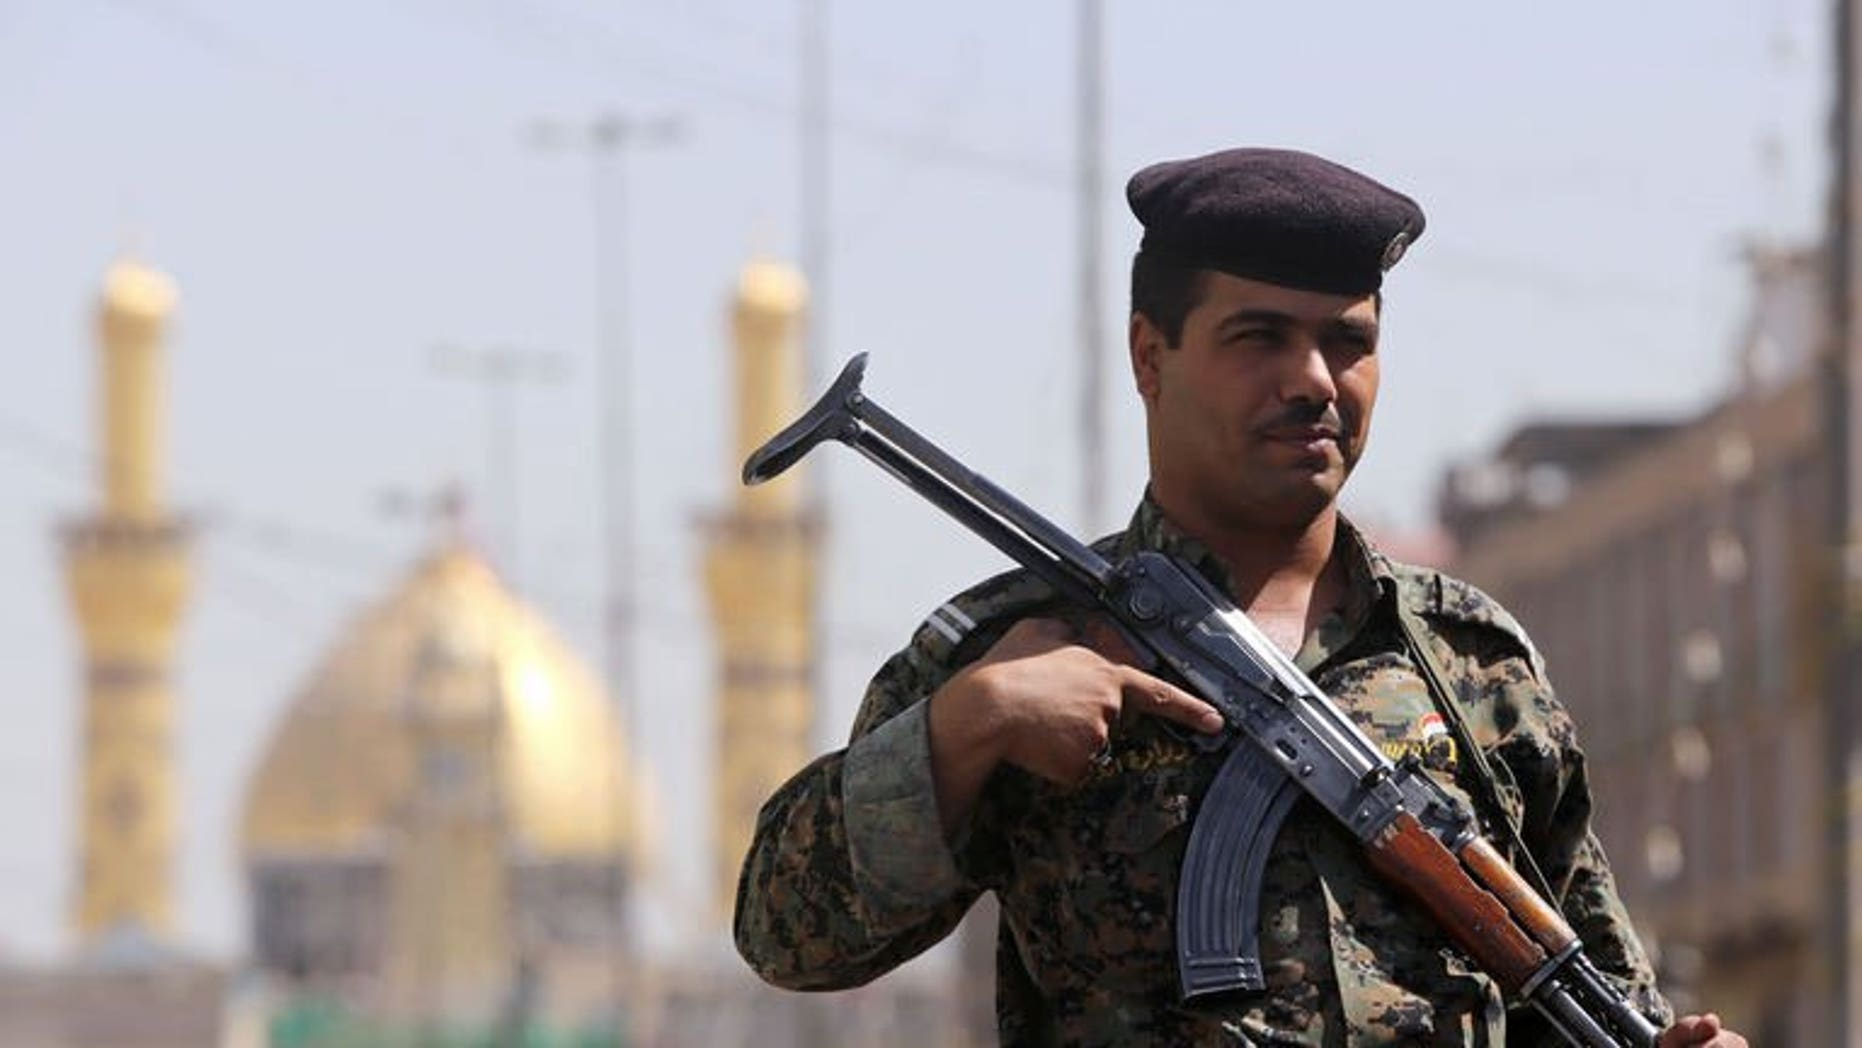 An Iraqi policeman stands guard outside the shrine of Imam Abbas as Shiite Muslims gather for the annual festival of Shaabaniya in the central city of Karbala, on June 23, 2013. Three car bombs, including a suicide attack, have killed at least four people in disputed territory in northern Iraq where analysts fear tensions could trigger a full-blown conflict.